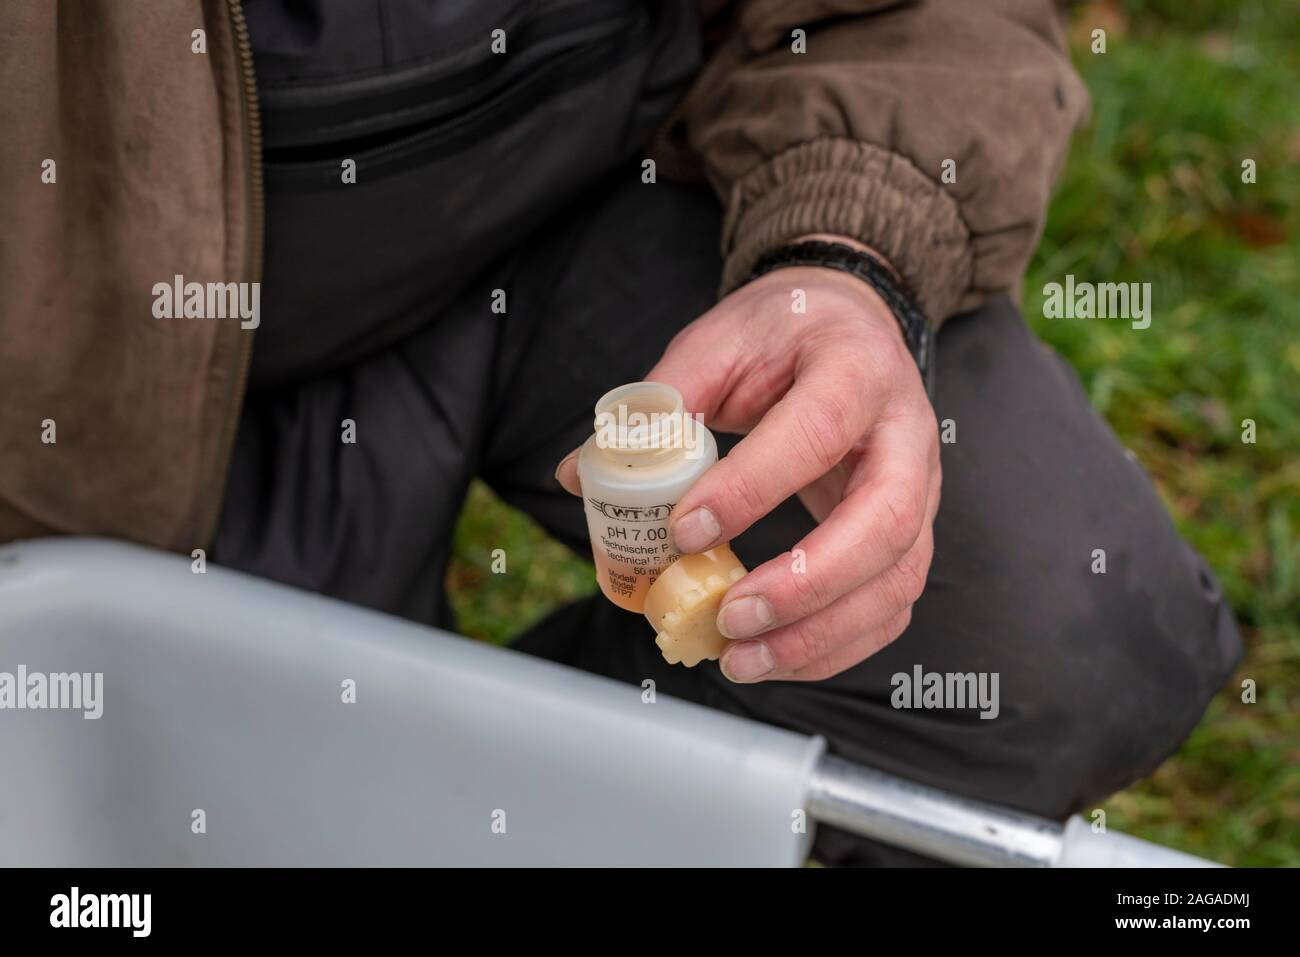 Zerbst, Saxony-Anhalt, Germany. 18th Dec 2019. Steffen Zahn from the Institute for Inland Fisheries in Potsdam (Institur für Binnenfischerei) drips an anaesthetic into a plastic tub. Salmon and sea trout are briefly anaesthetised in the liquid to measure, weigh and mark them. Zahn heads the migratory fish programme in Saxony-Anhalt. A total of 143,500 young salmon and 90,300 sea trout hatchlings have been released into the Nuthe near Zerbst over the past ten years. Credit: Mattis Kaminer/Alamy Live News Stock Photo